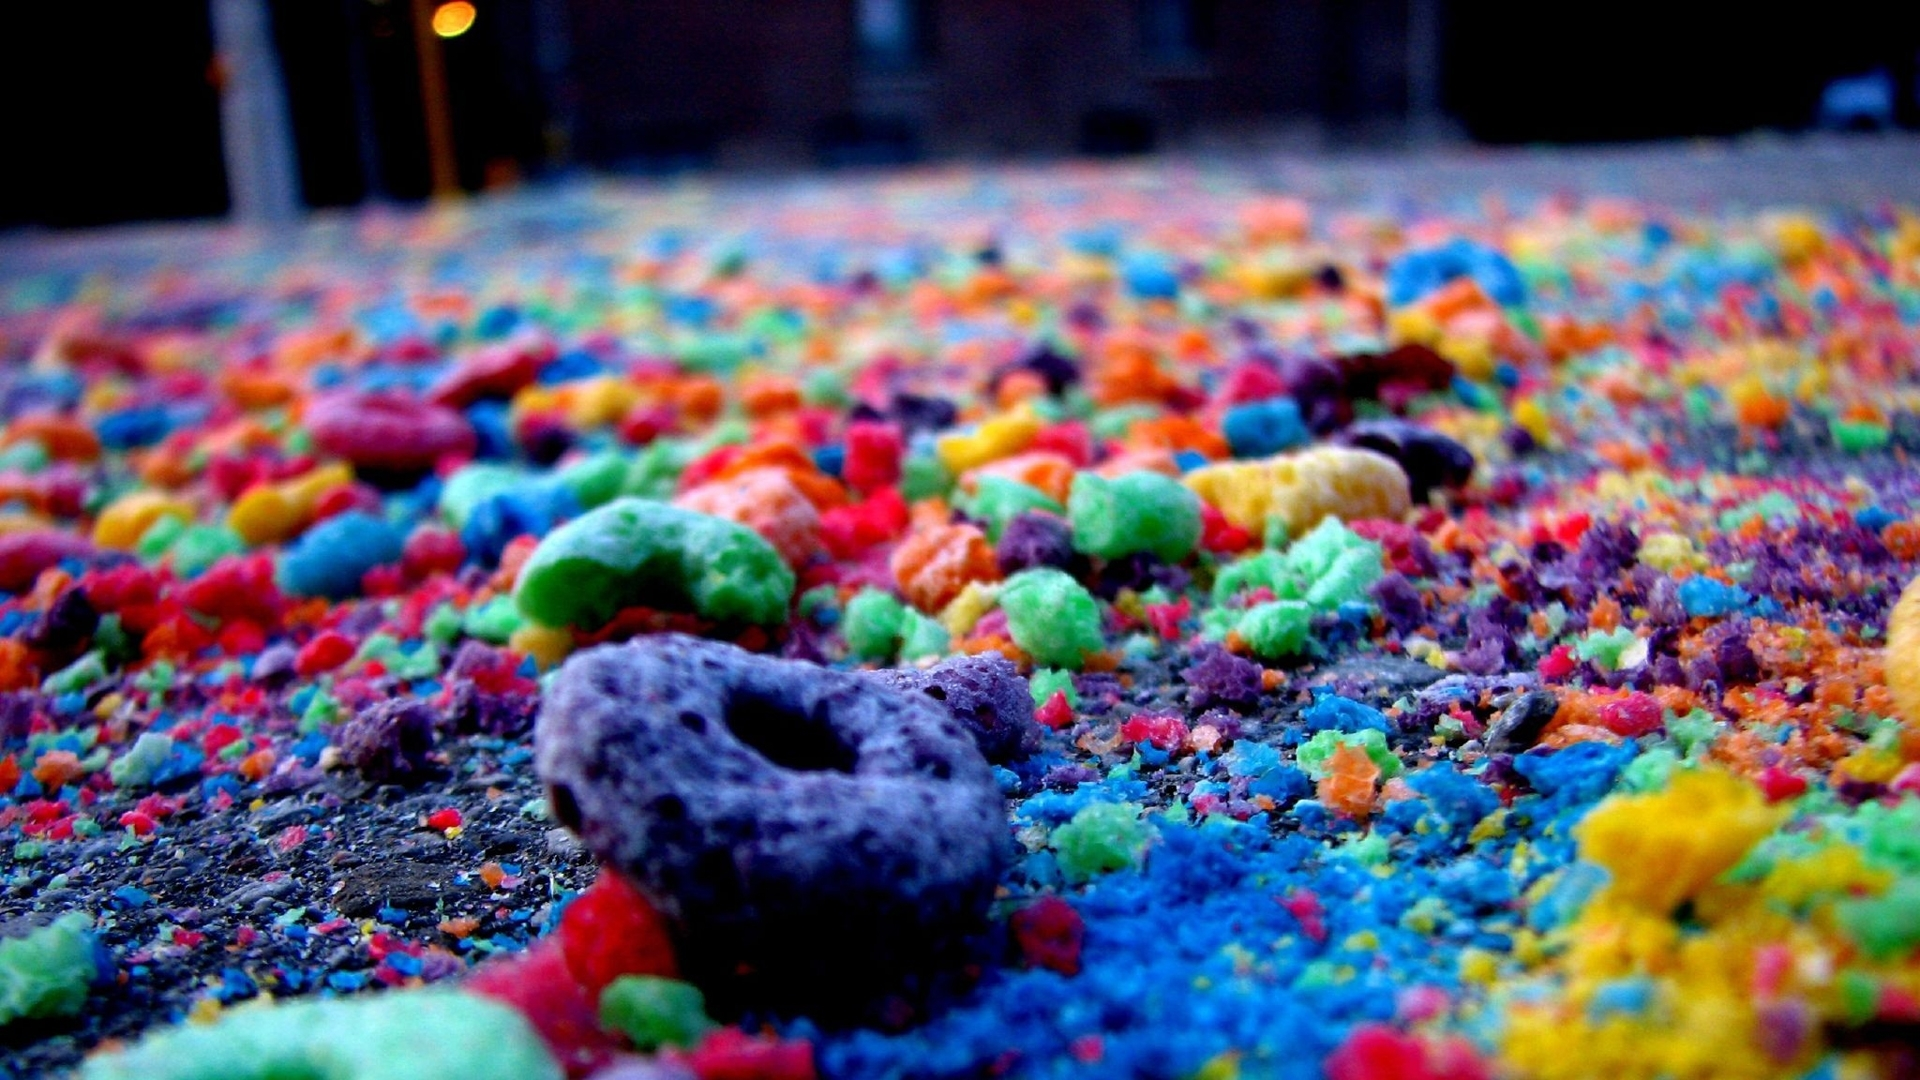 colourful randomness - hd wallpapers